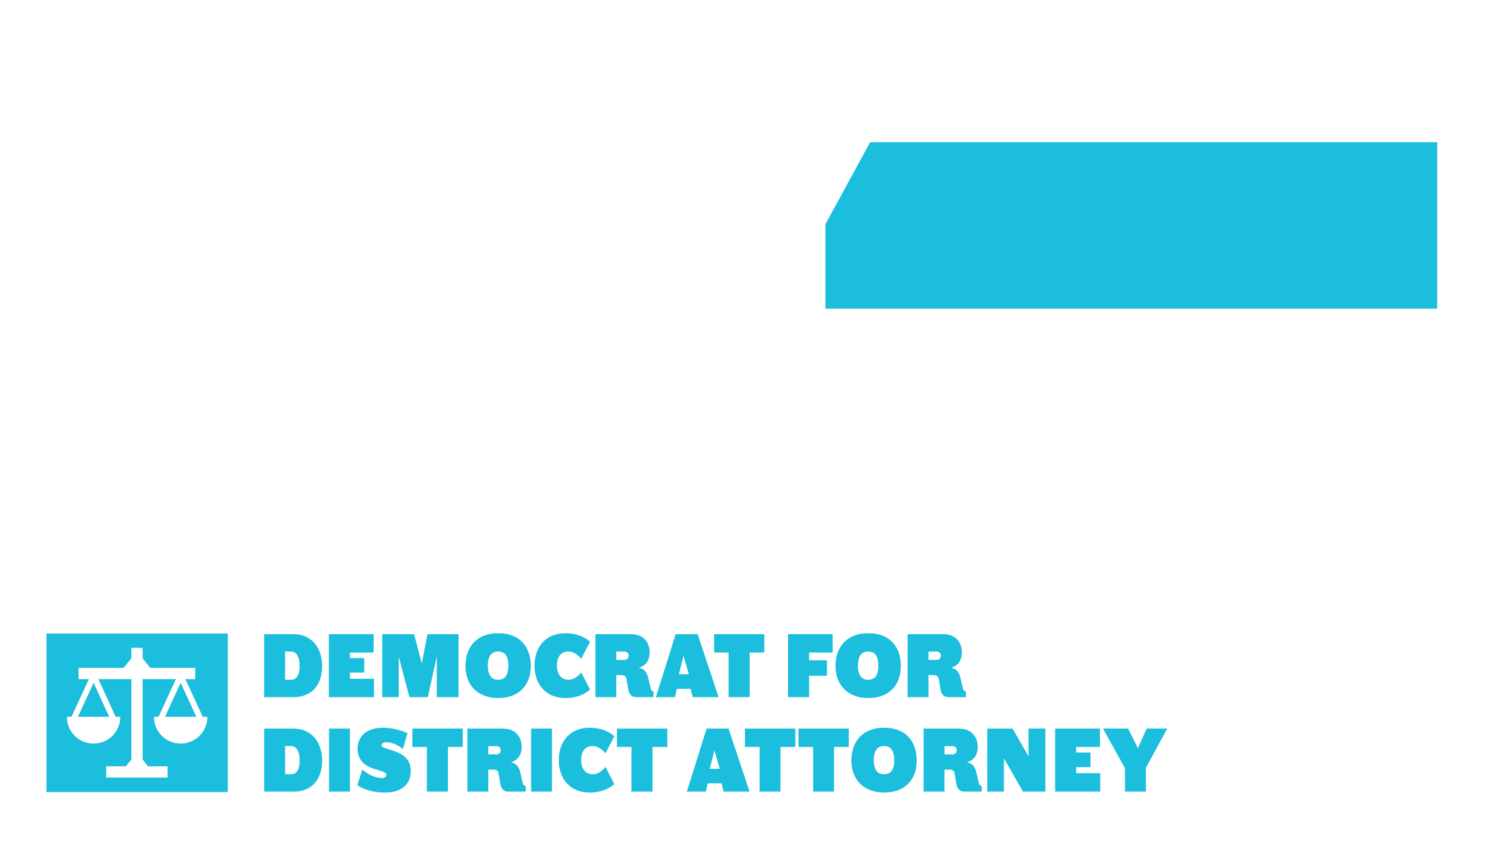 Amy Padden Democrat for District Attorney